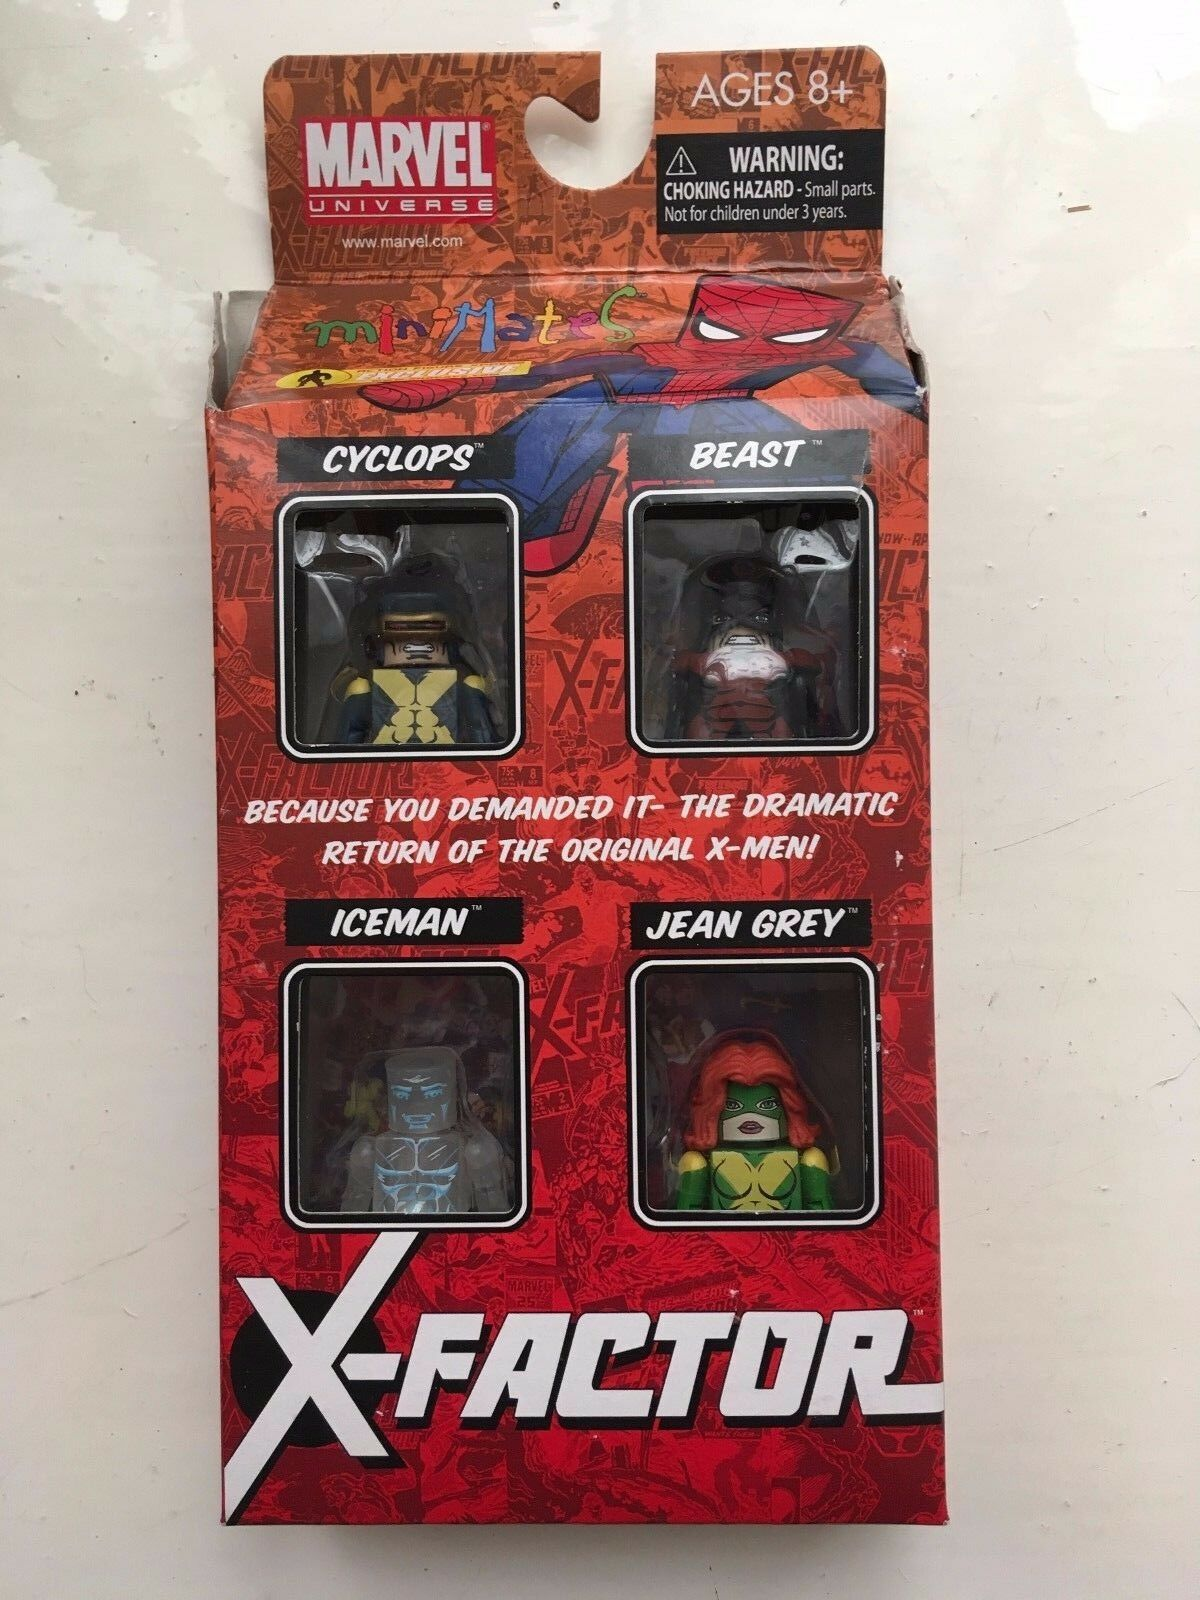 MINIMATES MARVEL CYCLOPS BEAST ICEMAN & JEAN GREY X-FACTOR ACTION FIGURES SET